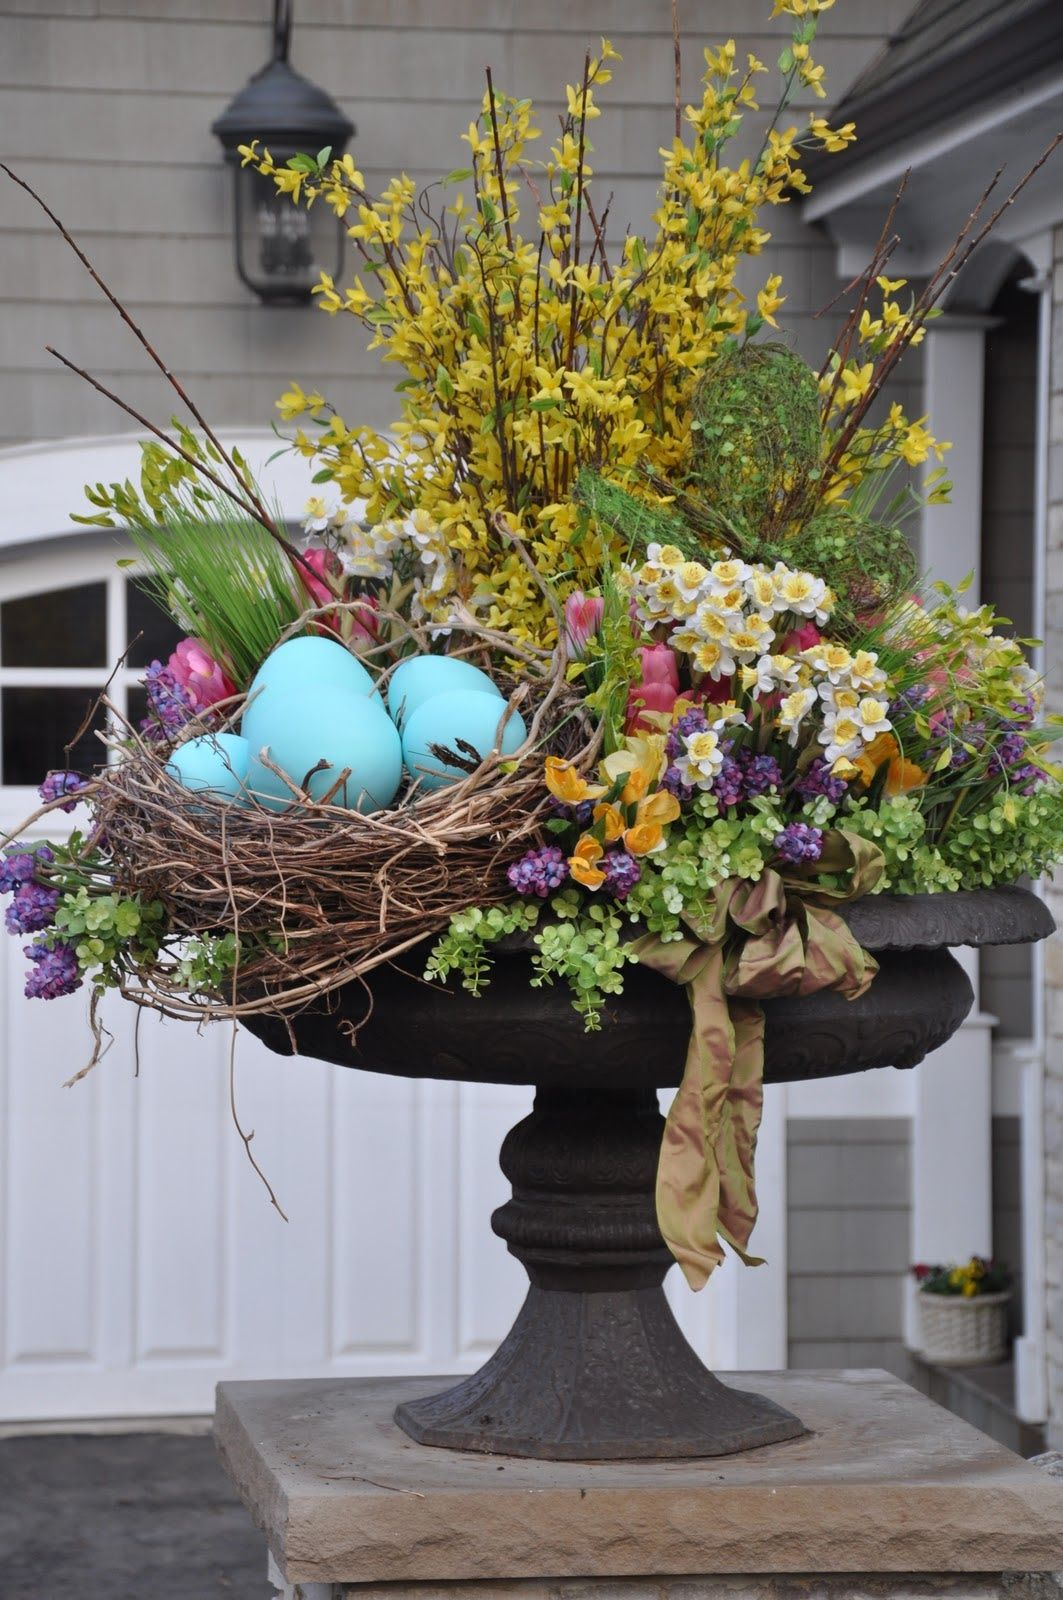 Urn Decor Magnificent Easter Urn Outdoors  Spring Decor  Pinterest  Urn Easter And 2018